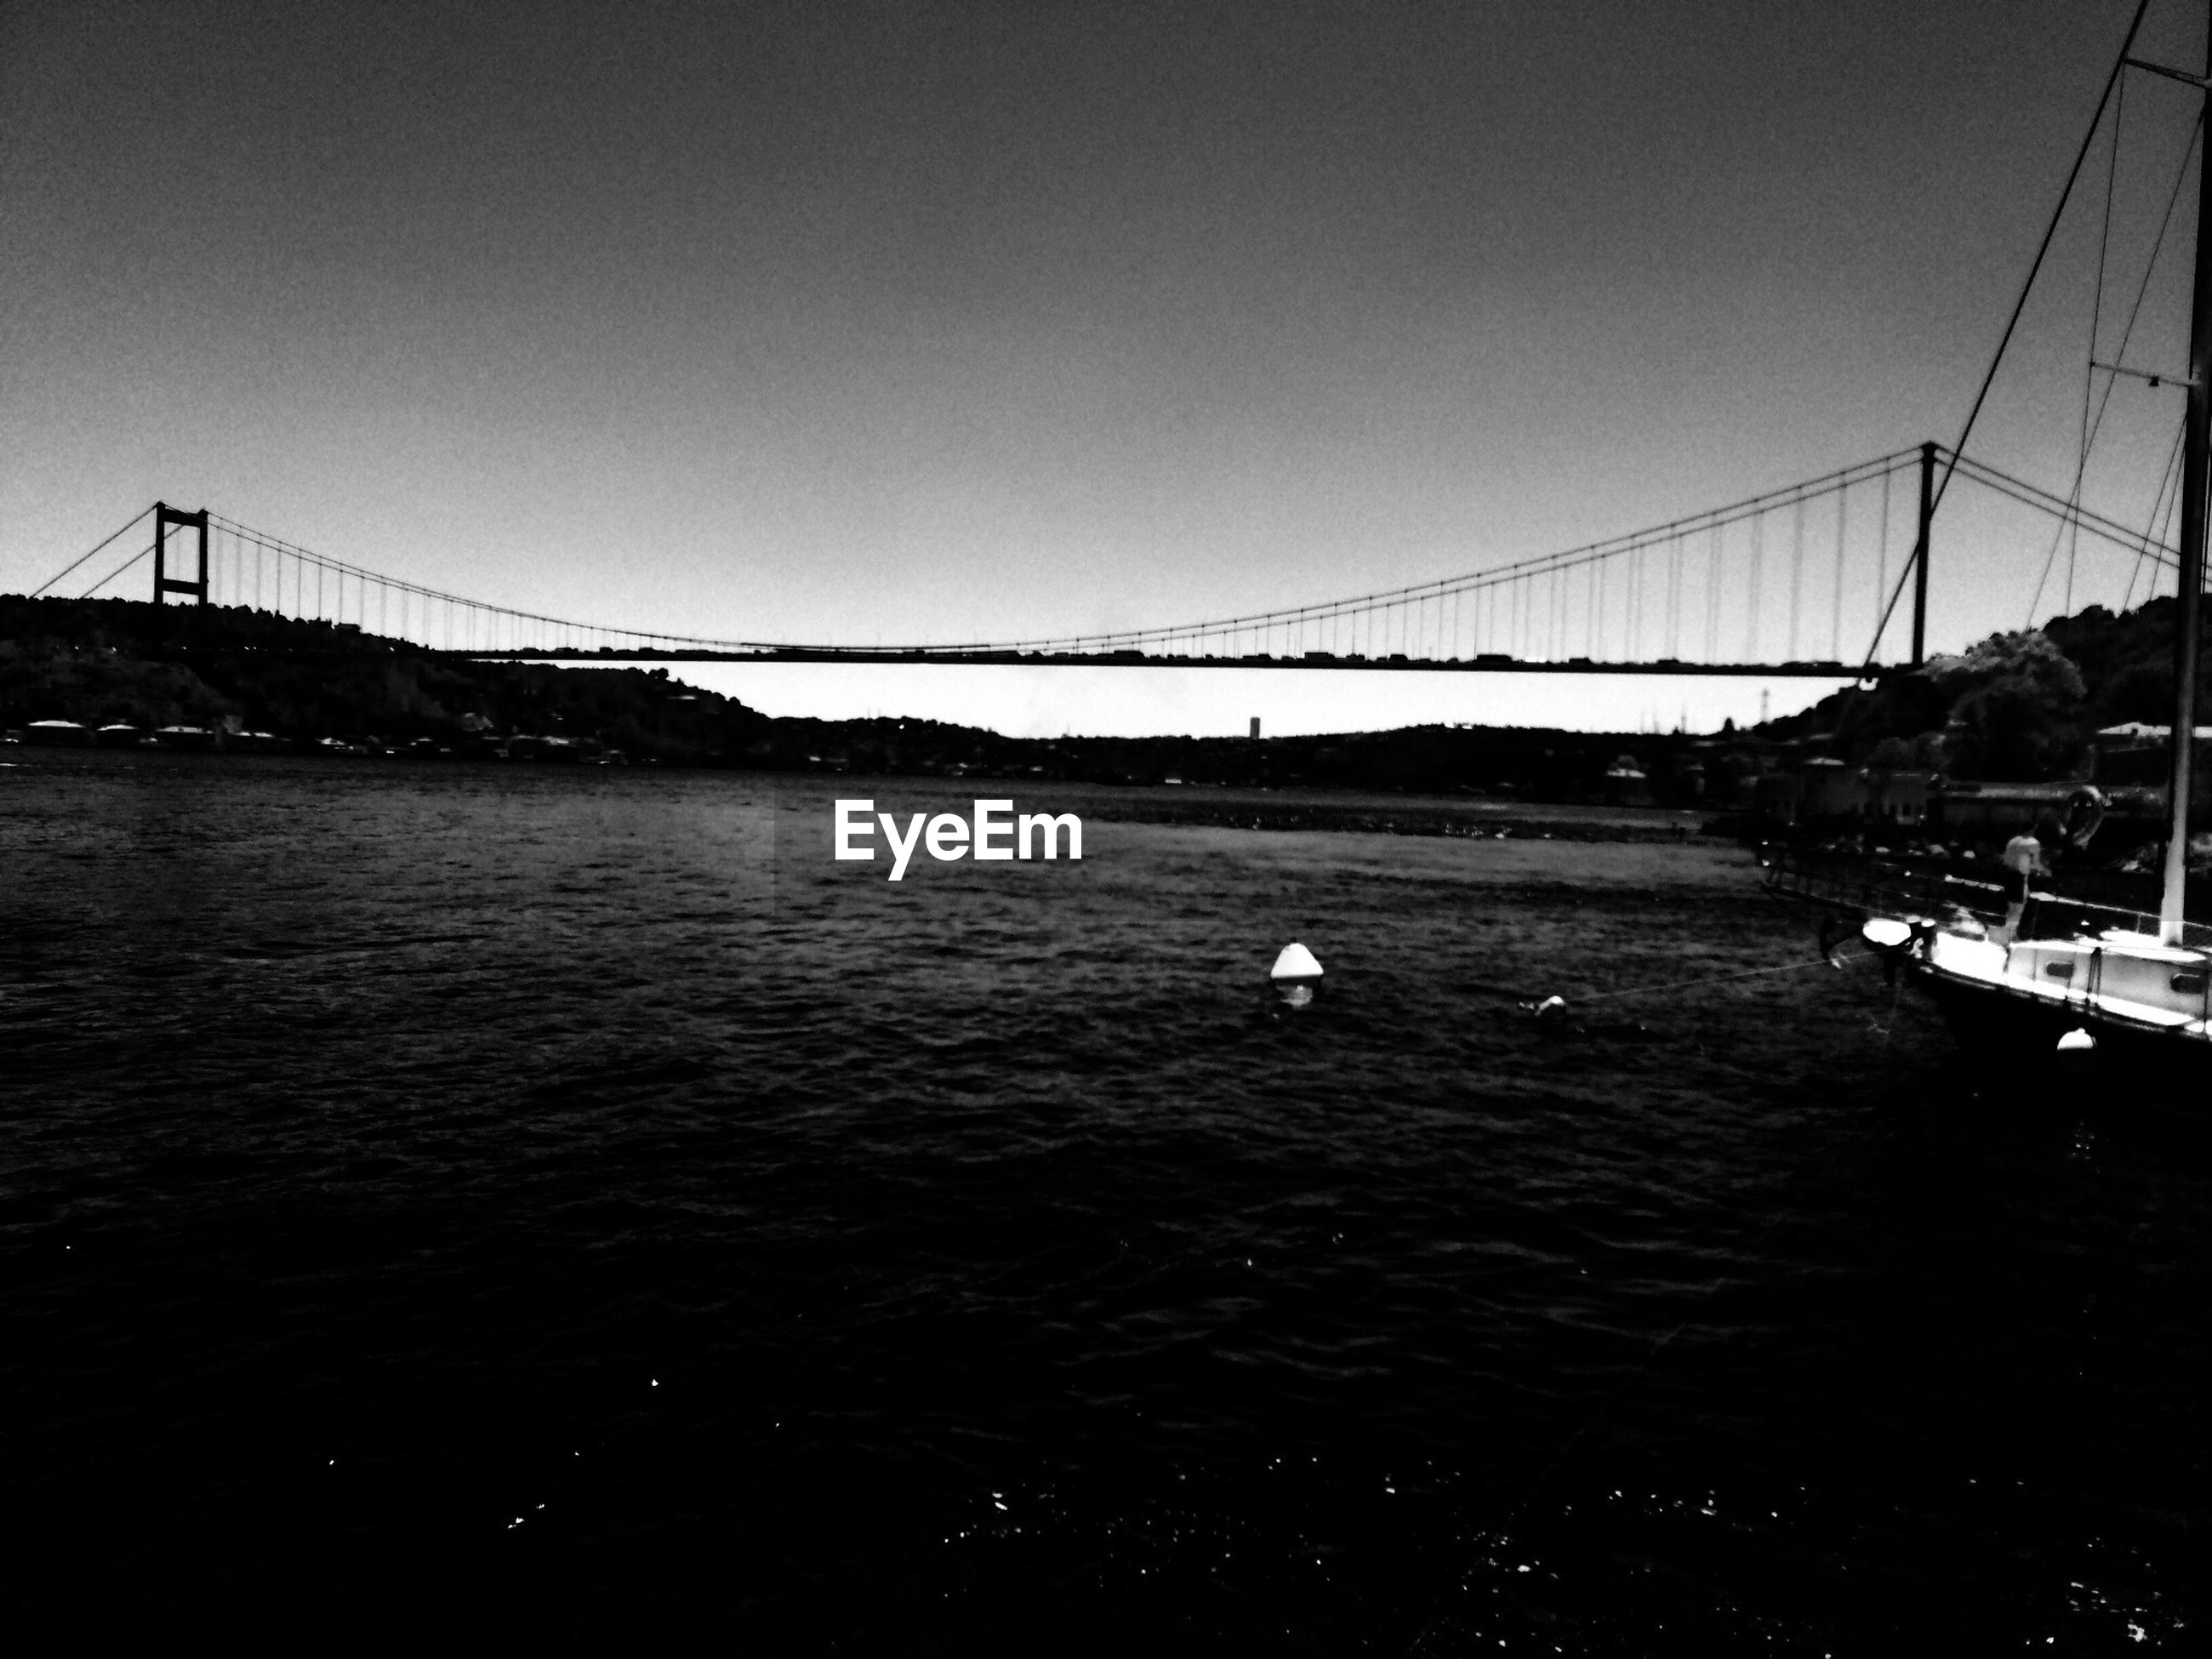 connection, bridge - man made structure, water, clear sky, transportation, animal themes, bird, river, built structure, architecture, copy space, suspension bridge, bridge, nautical vessel, engineering, one animal, animals in the wild, wildlife, waterfront, outdoors